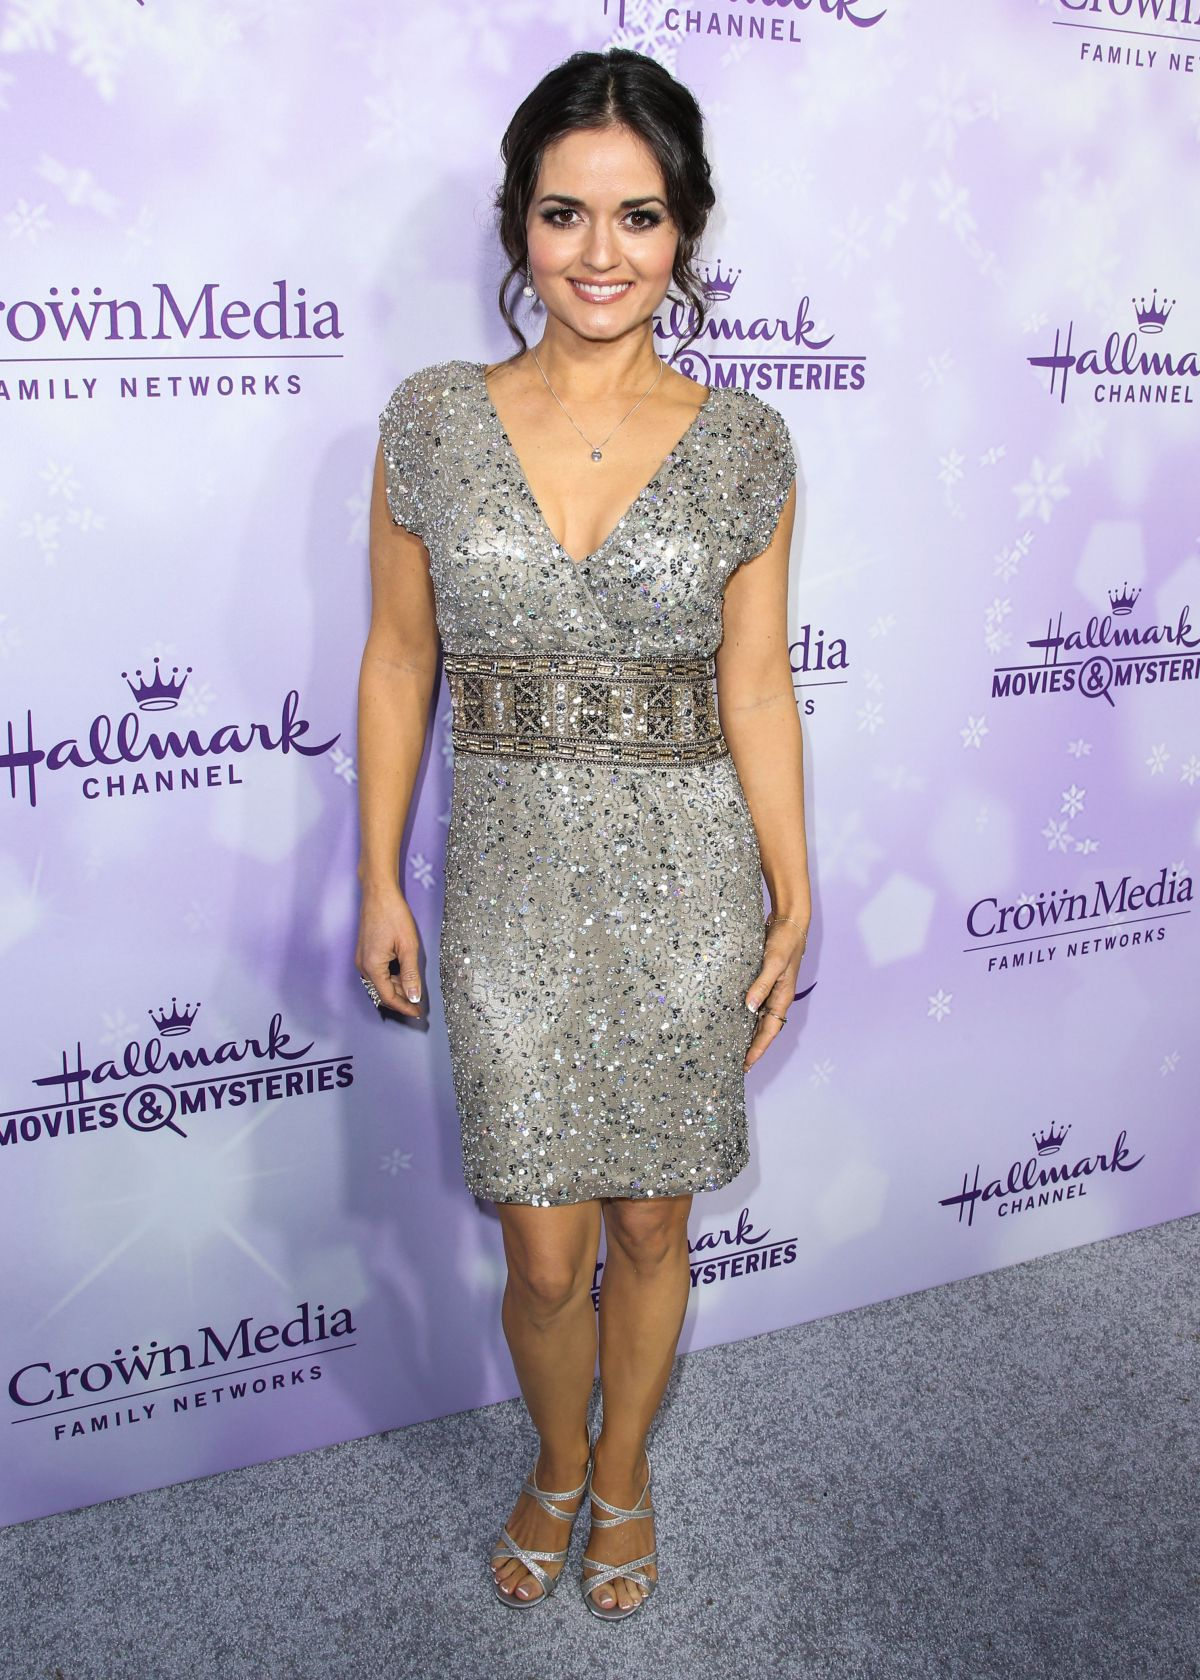 Danica McKellar At Hallmark Channel Party At The 2016 Winter TCA Tour